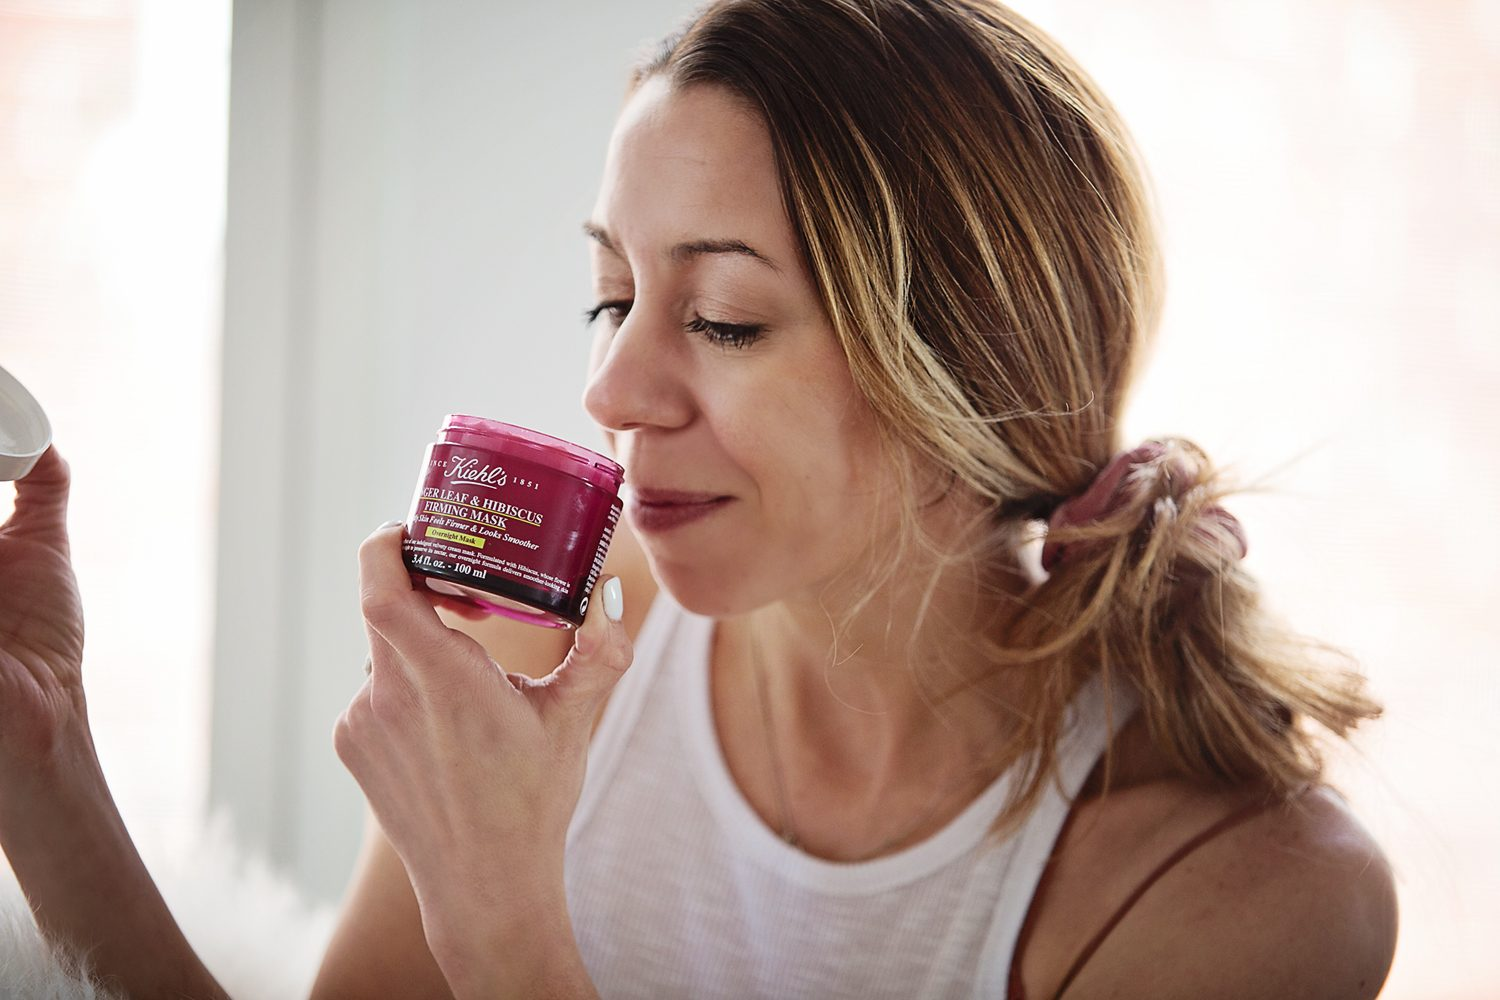 The Motherchic using Kiehl's ginger leaf and hibiscus overnight mask